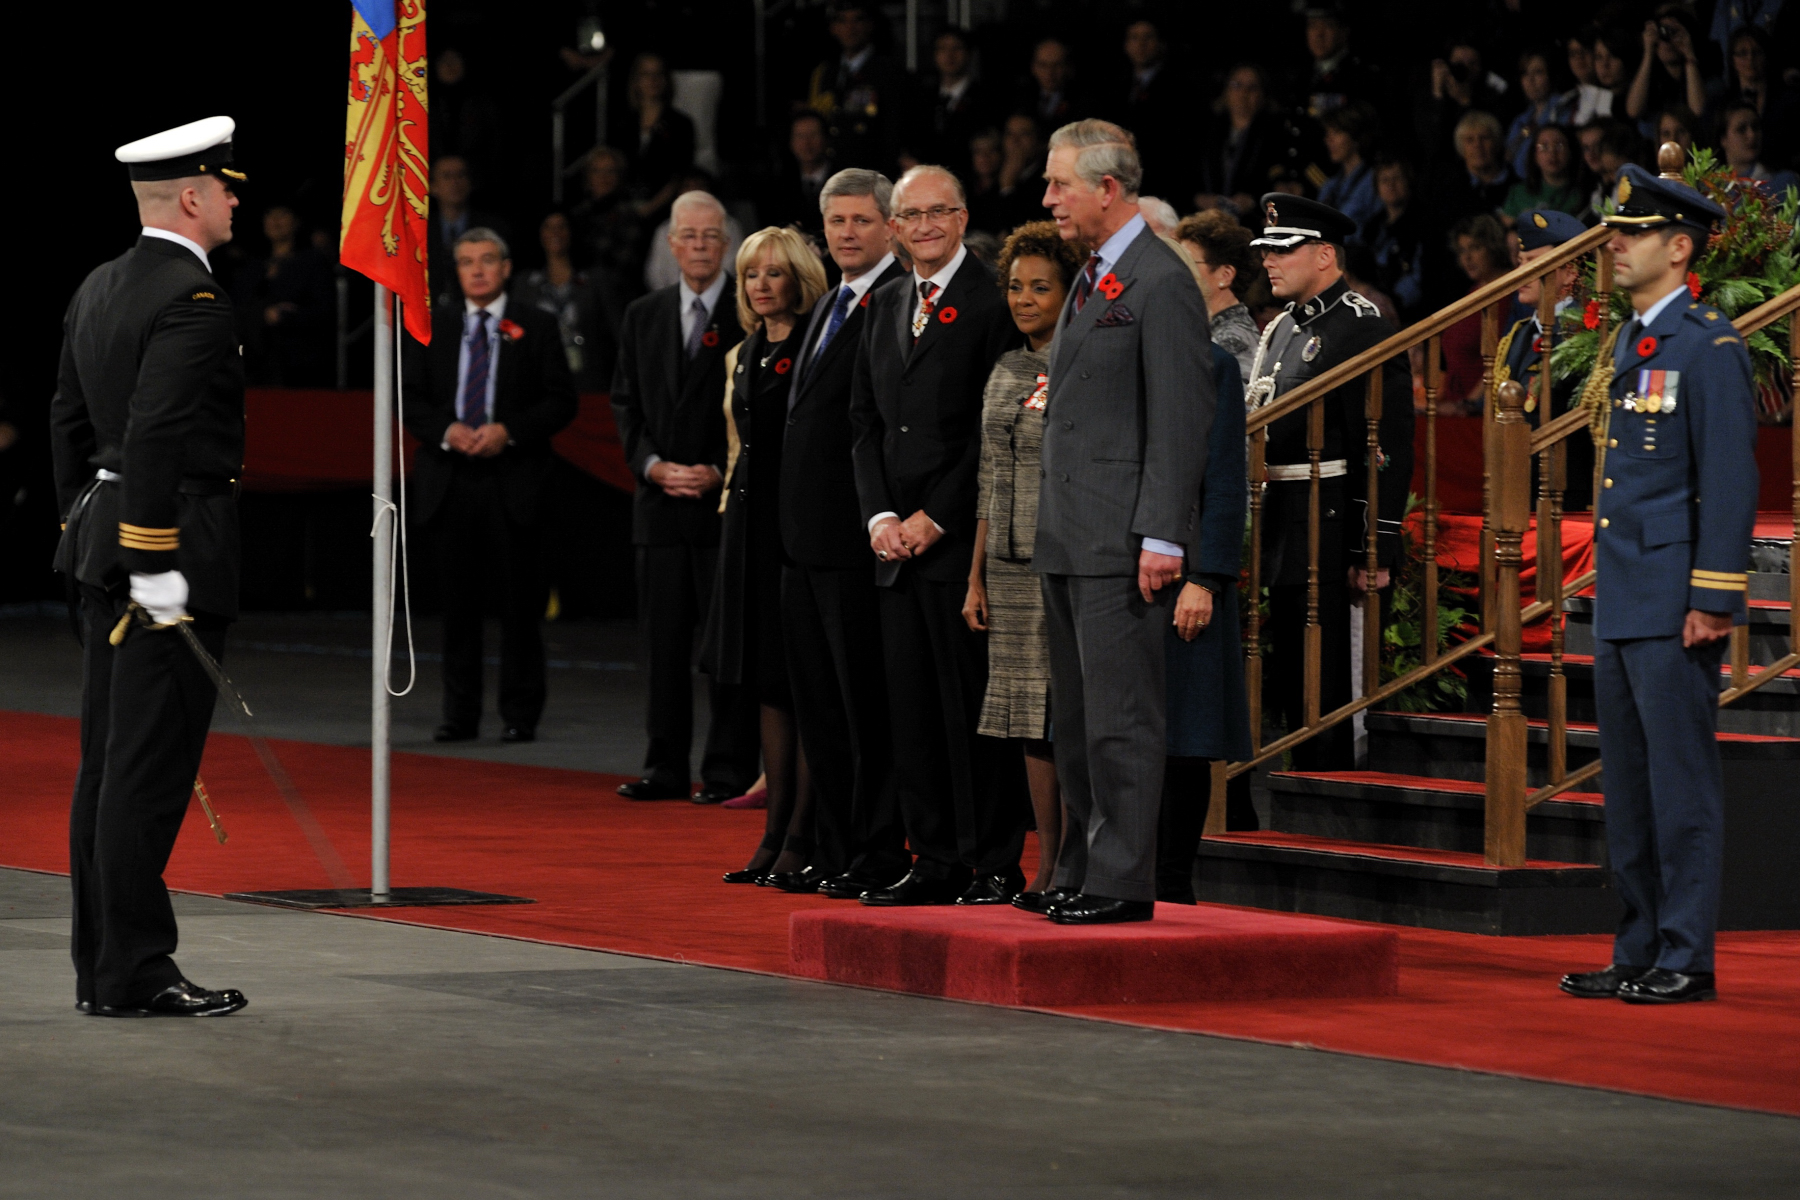 The public ceremony to welcome Their Royal Highnesses to Canada was held at Mile One Centre in St.John's, Newfoundland and Labrador on November 2.